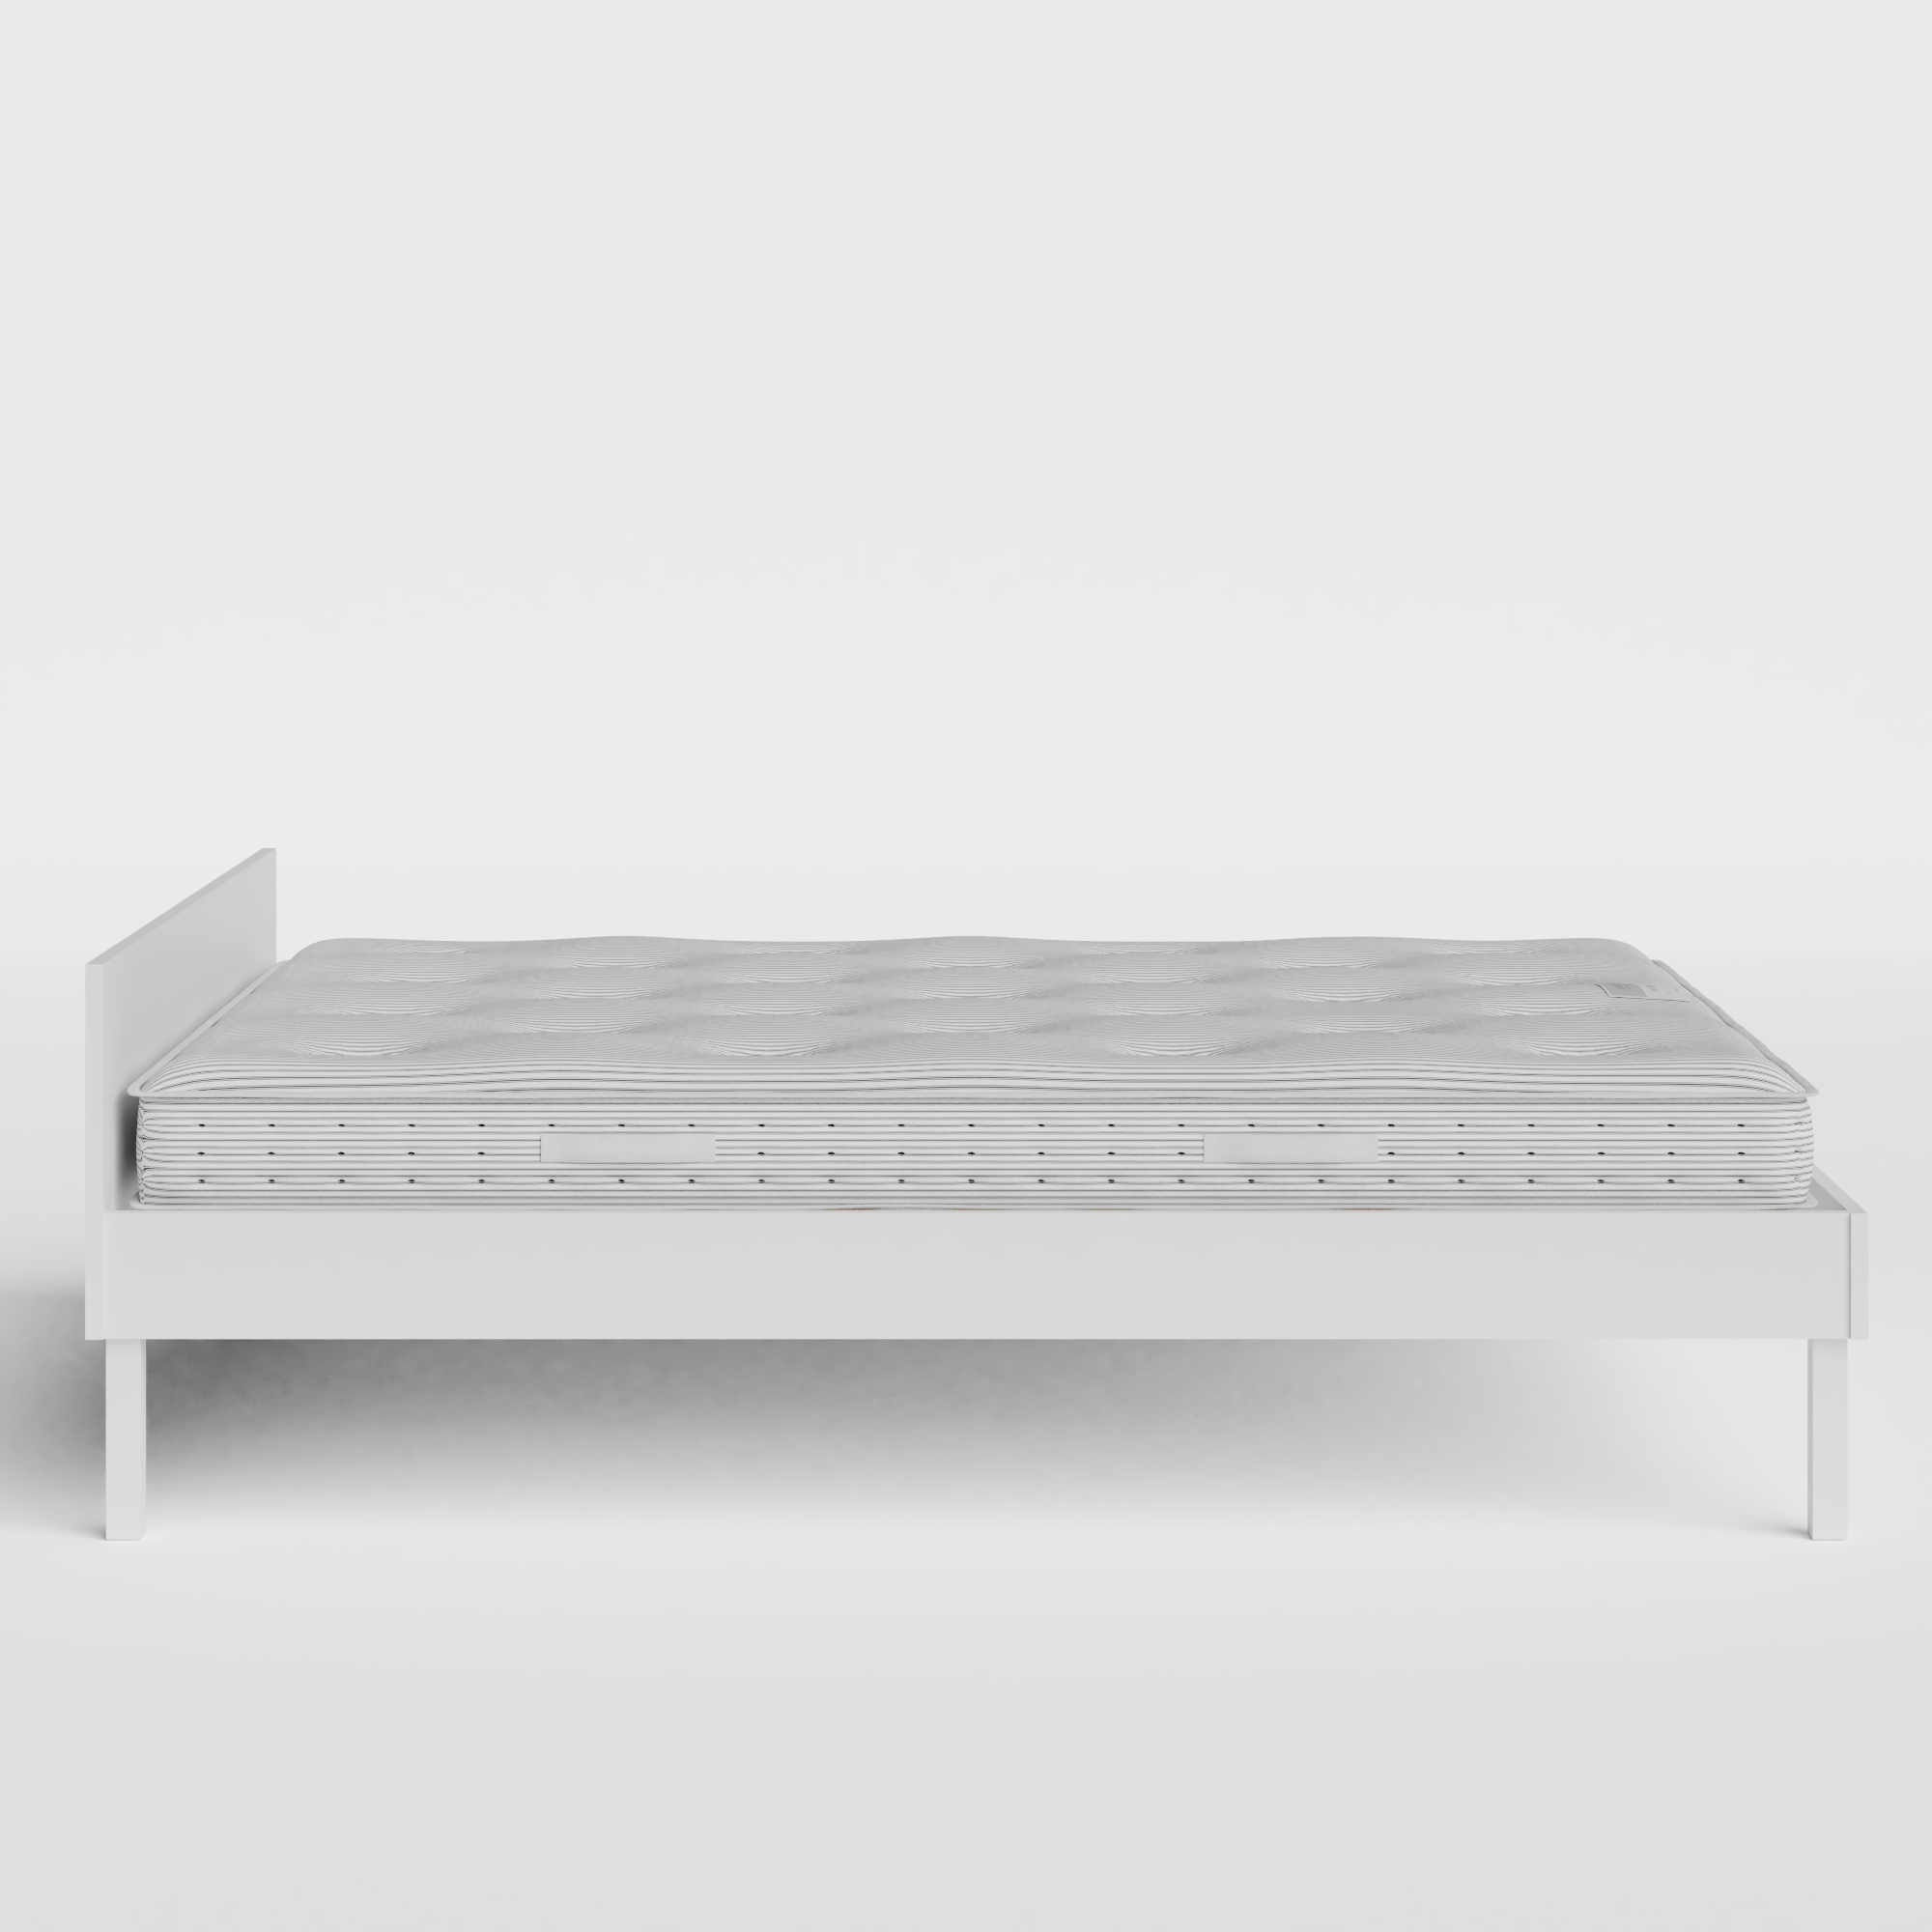 Fuji Painted painted wood bed in white with Juno mattress